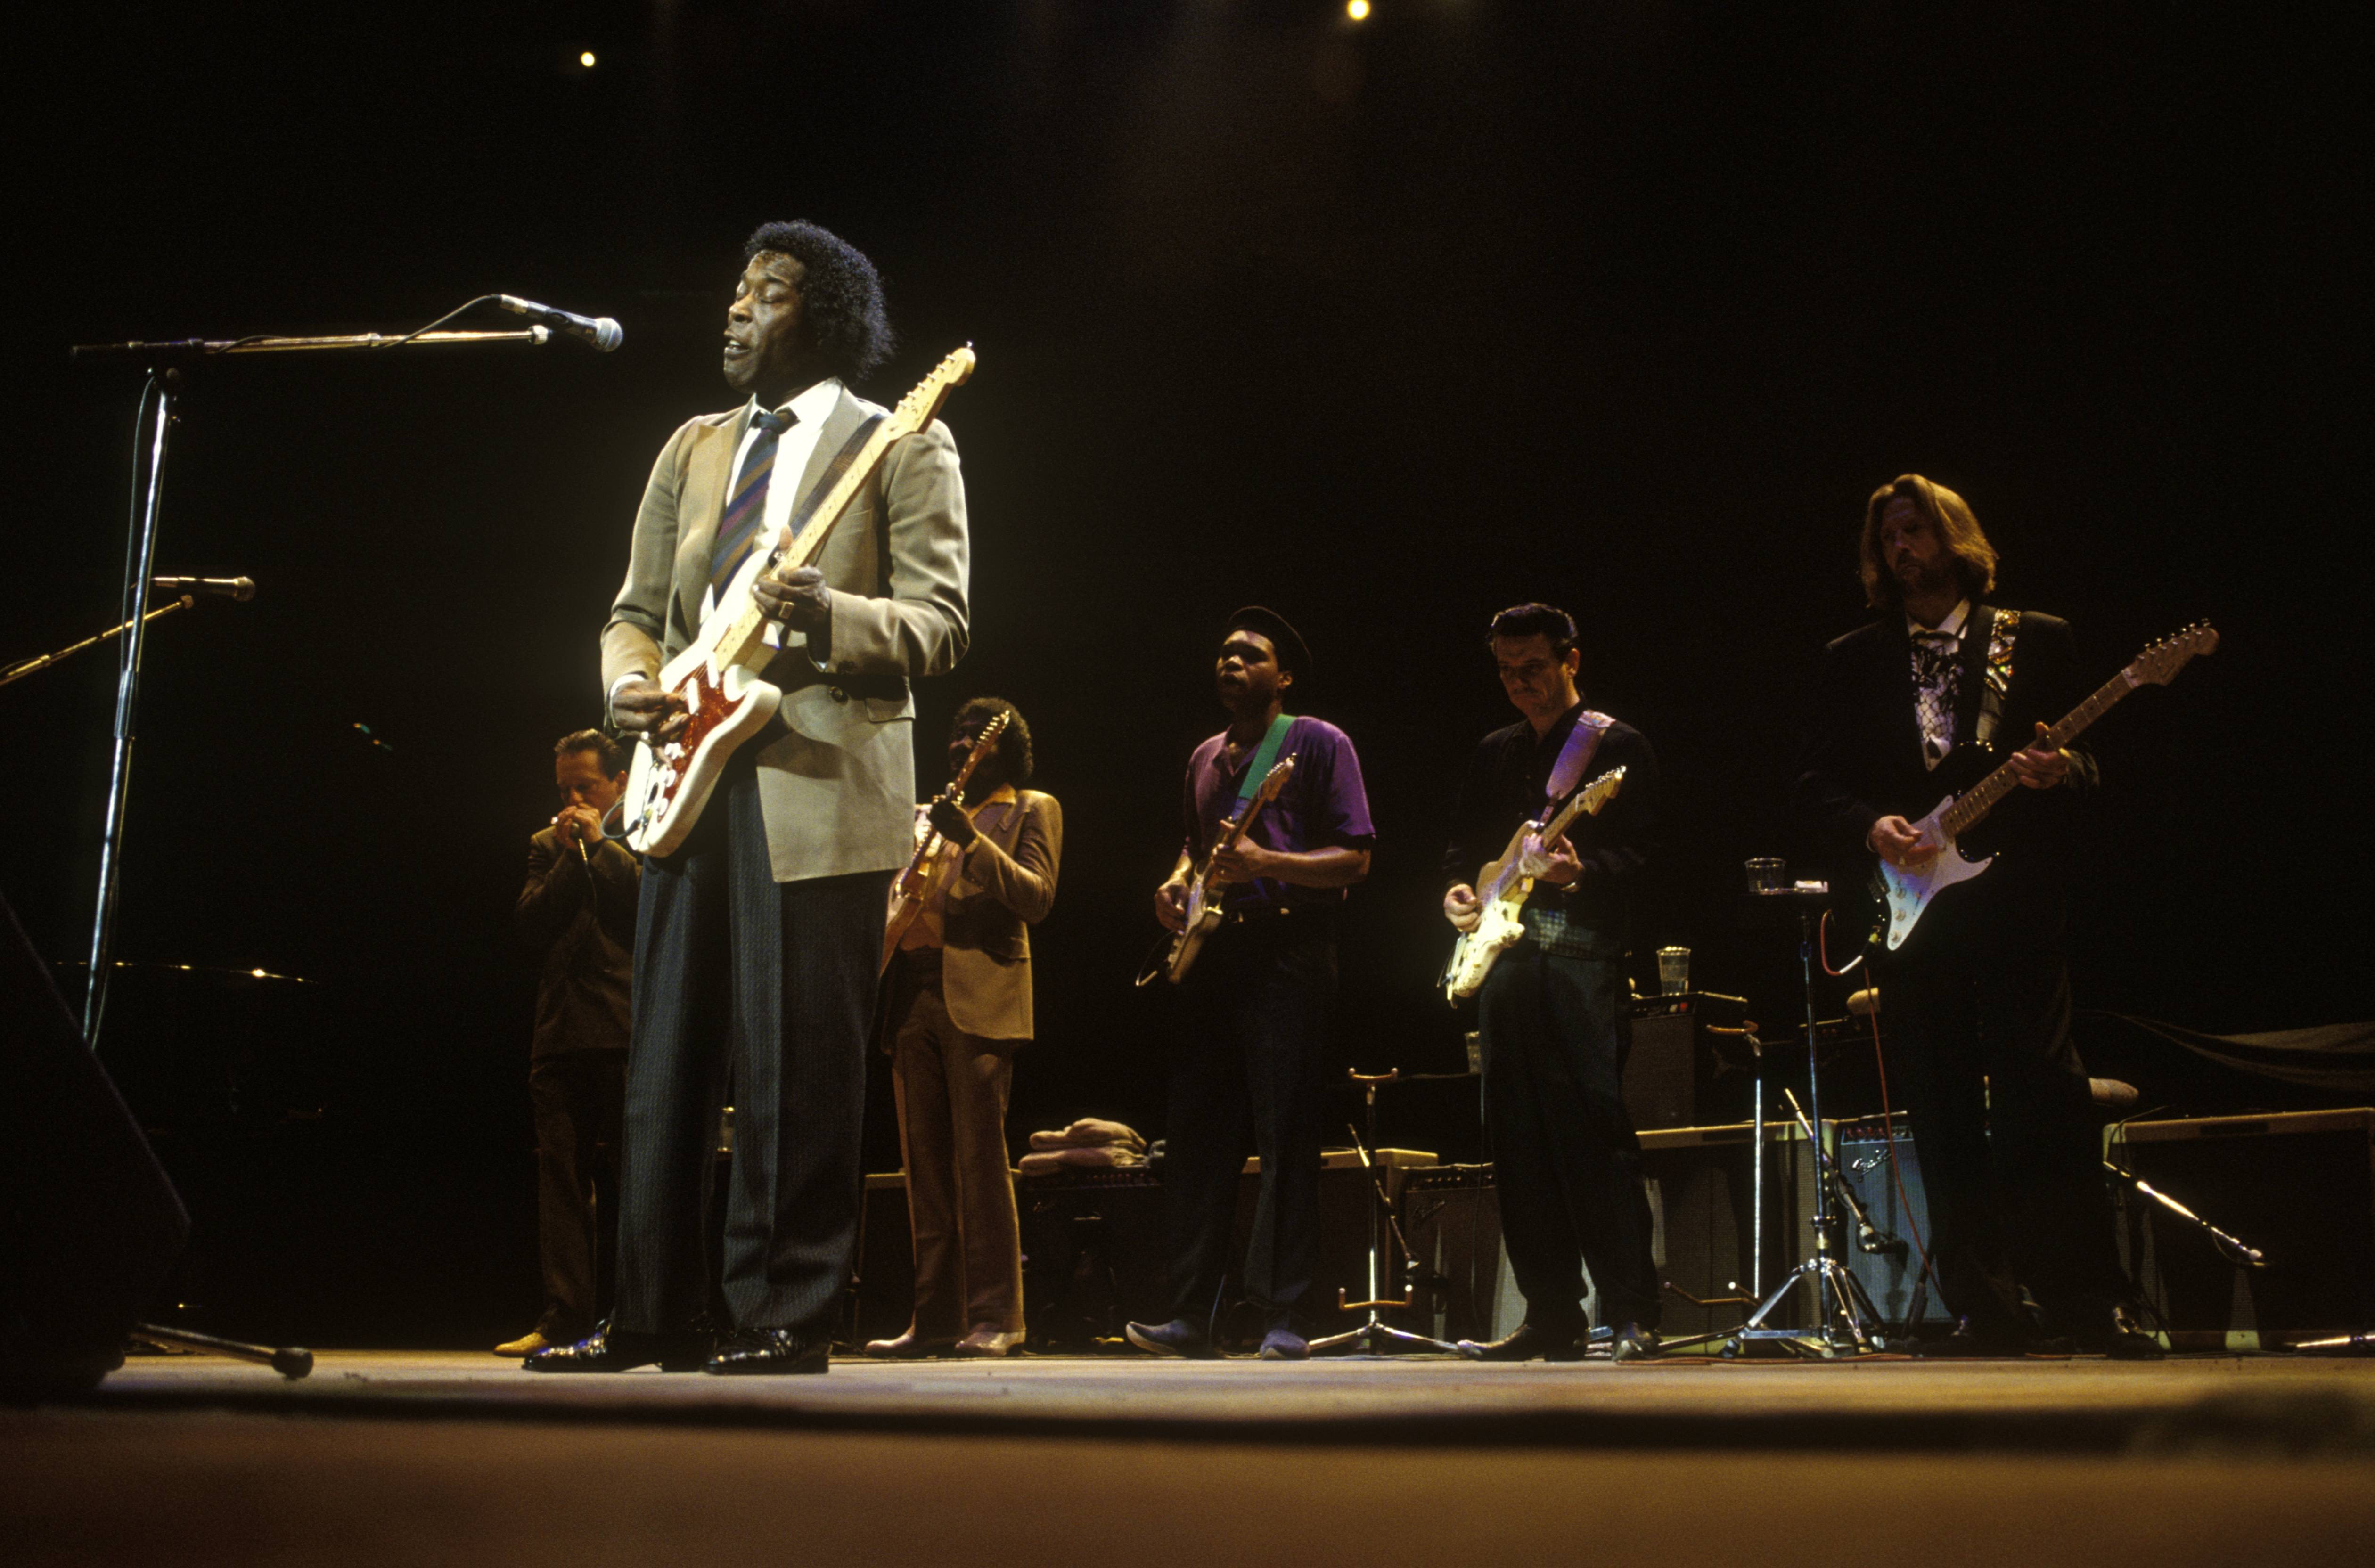 UNITED KINGDOM - JANUARY 01:  ROYAL ALBERT HALL  Photo of Robert CRAY and Buddy GUY and Albert COLLINS and Eric CLAPTON, with